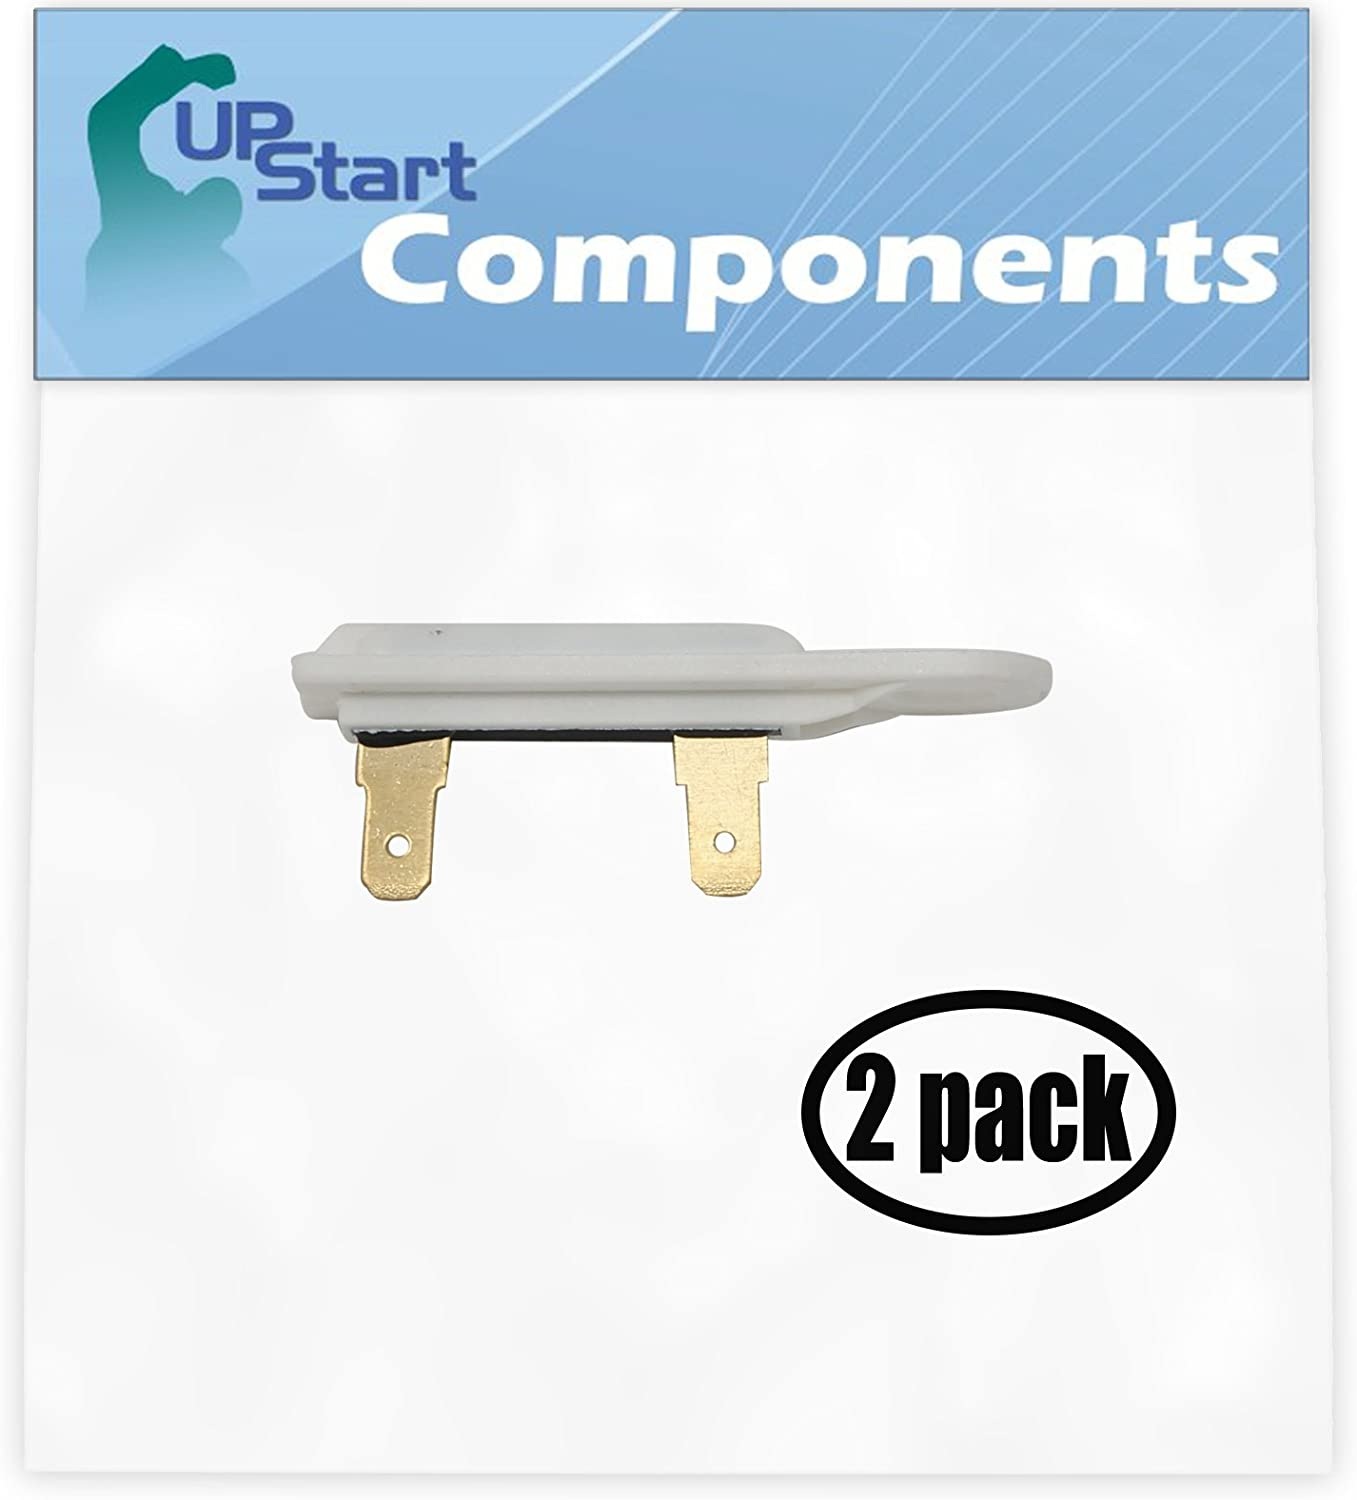 2 Pack Dryer Thermal Fuse 3388651, 3392519, 694511, 80005, WP3392519VP Replacement for Whirlpool LGR4634JQ0 Residential Gas Dryer